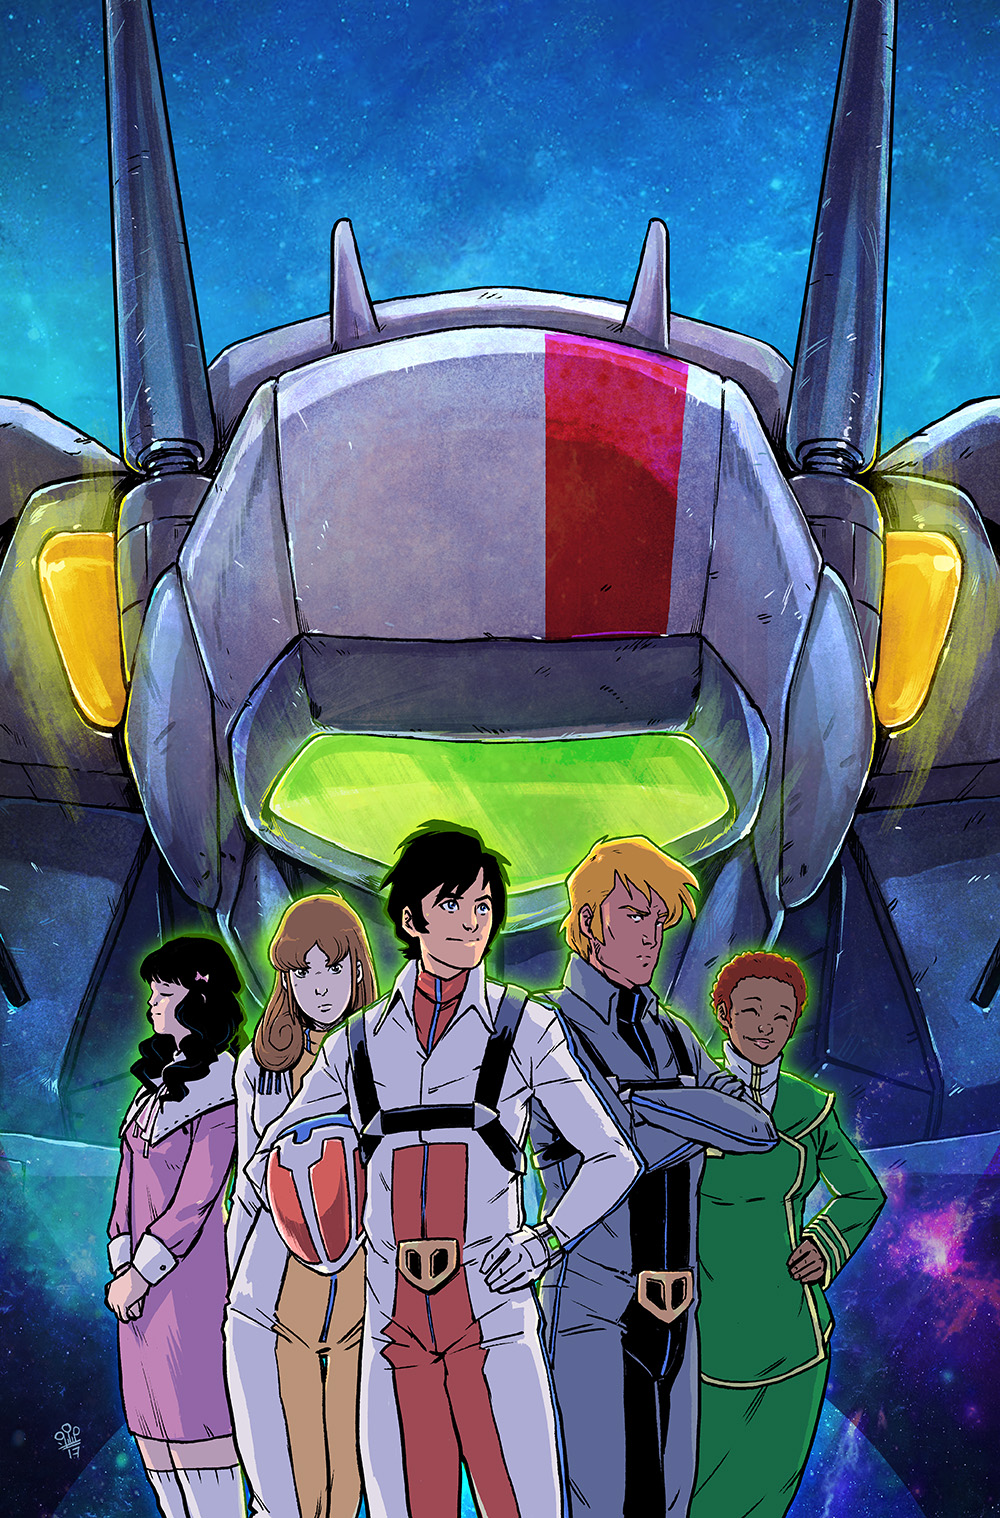 ROBOTECH_cover_EDIT_FINAL_small.jpg